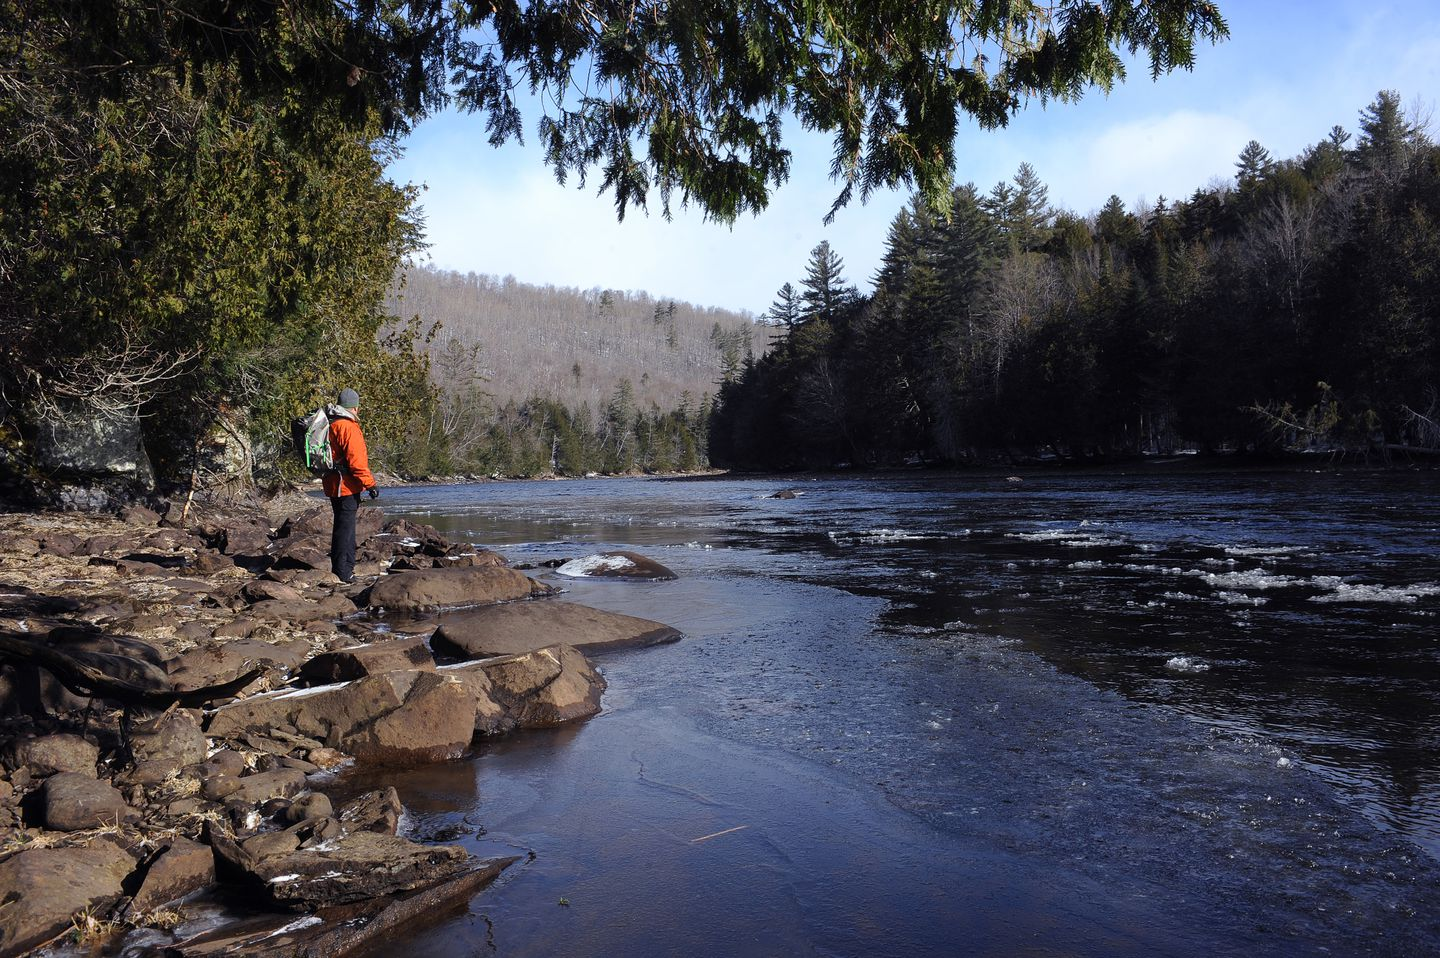 Russell Walters stood by the Kennebec River. A proposed hydropower line would cross over the Kennebec River Gorge.